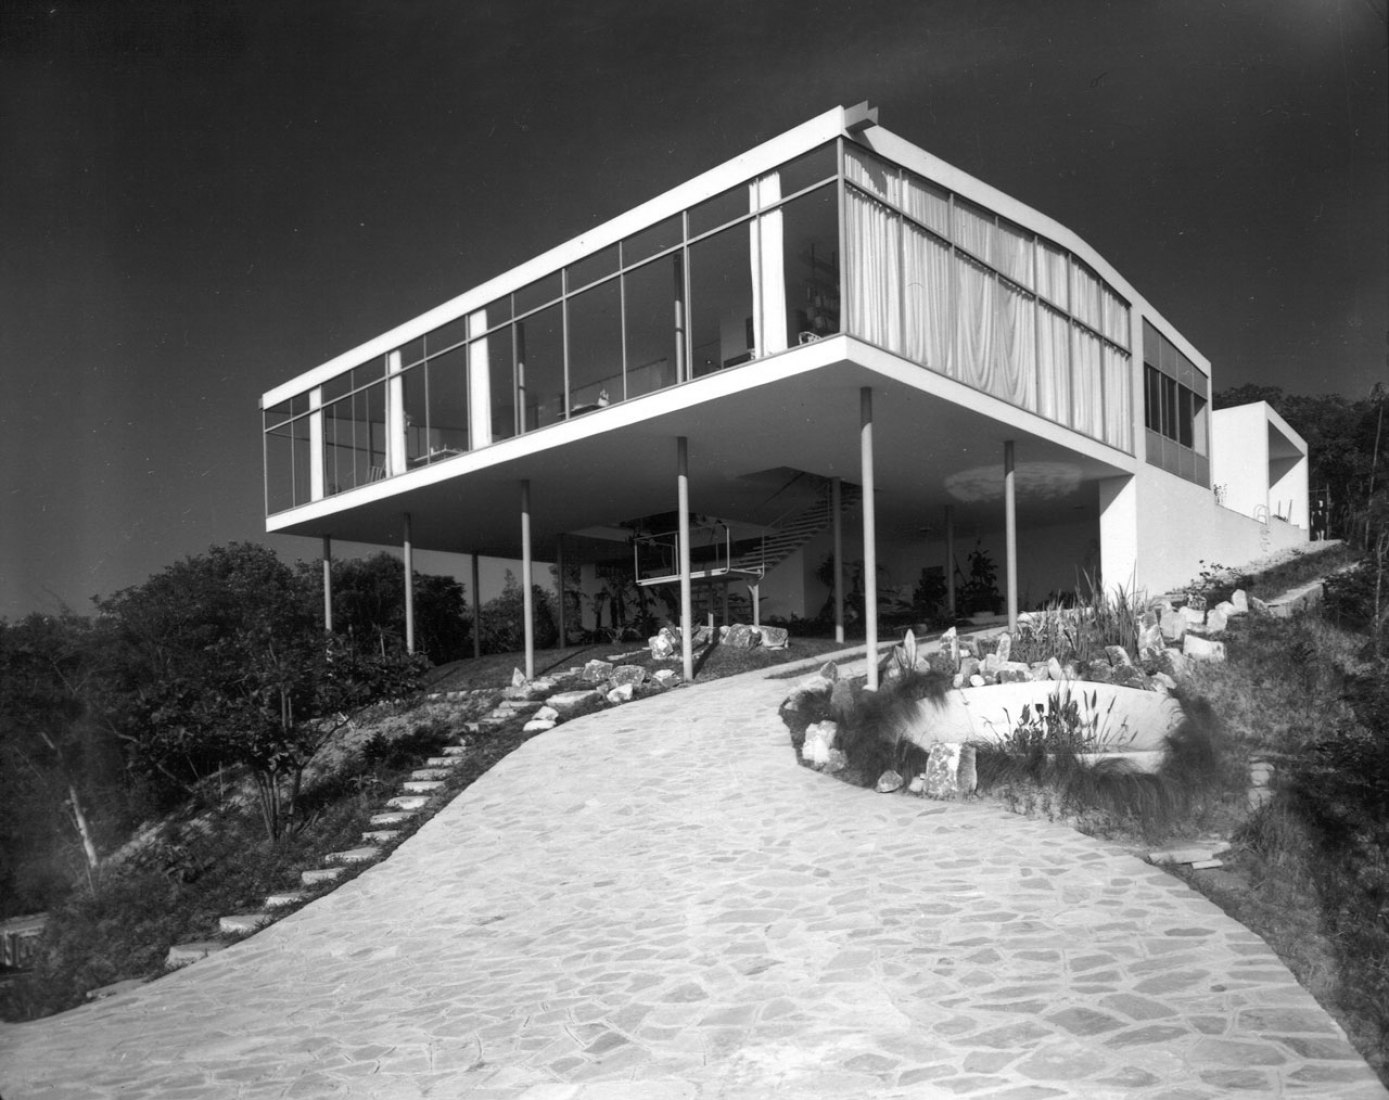 Overview. House of Glass by Lina Bo Bardi, São Paulo 1949-1951. Outside view after its ending . Photograph © Arquivo ILBPMB, Photo: Peter Schleier, 1951.